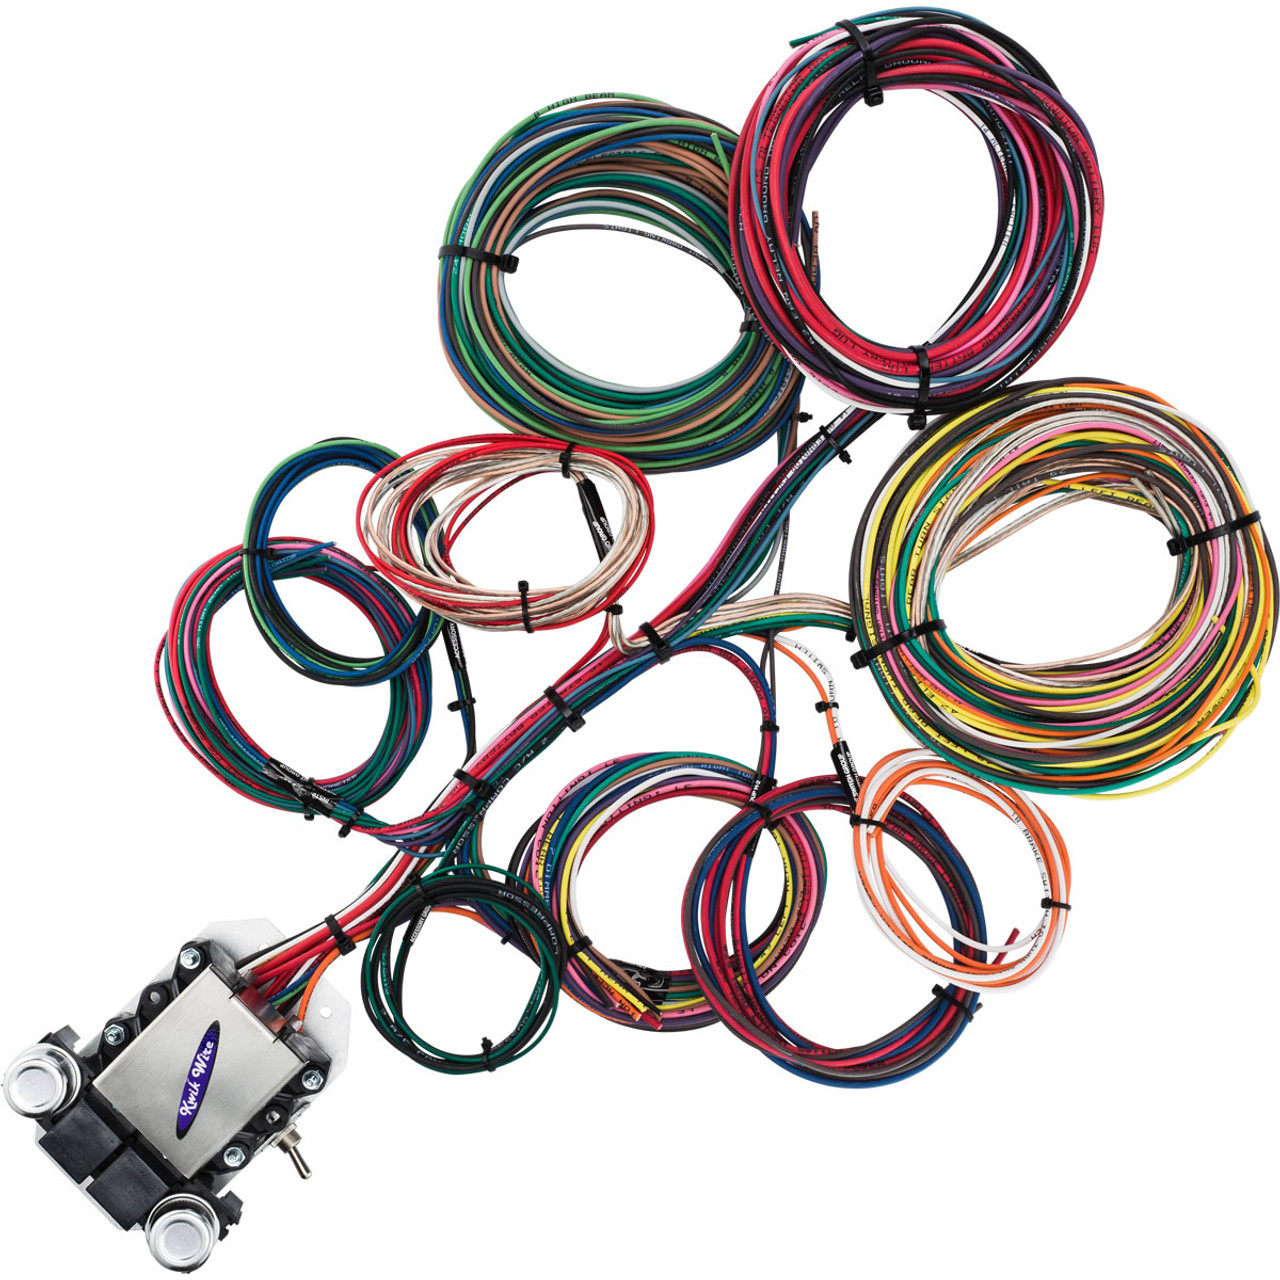 Superb 14 Circuit Wire Harness Kwikwire Com Electrify Your Ride Wiring Digital Resources Timewpwclawcorpcom